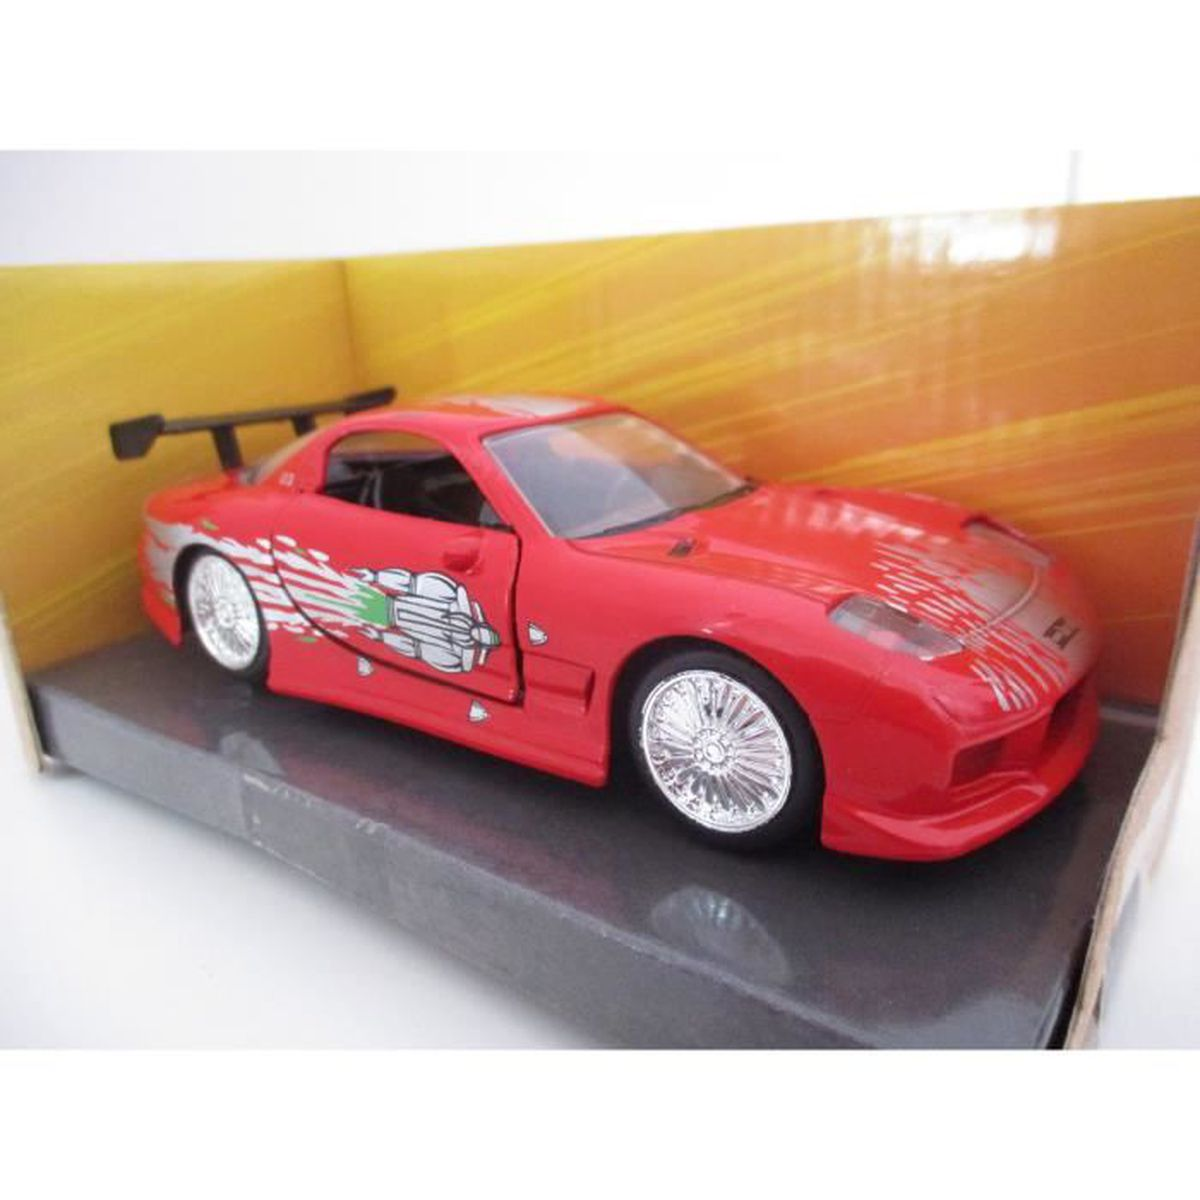 JADA-MAZDA RX7 1/32 DOM'S FAST AND FURIOUS 1 - Achat / Vente voiture